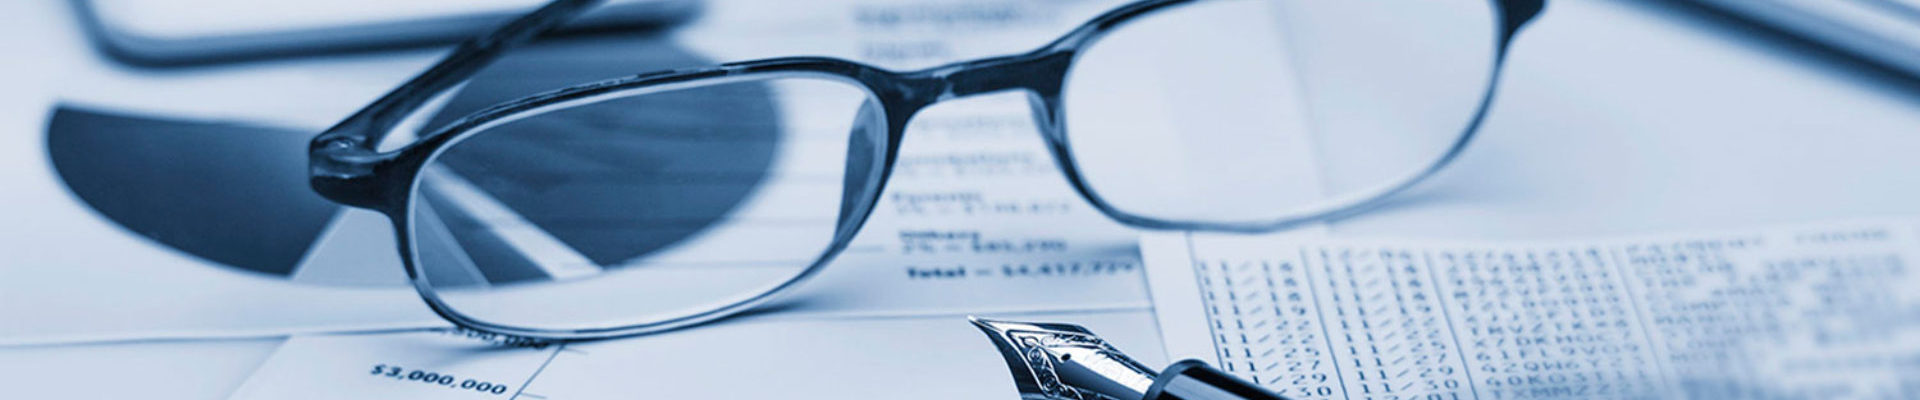 How Online Accounting Services Can Help You Improve Your Small Business